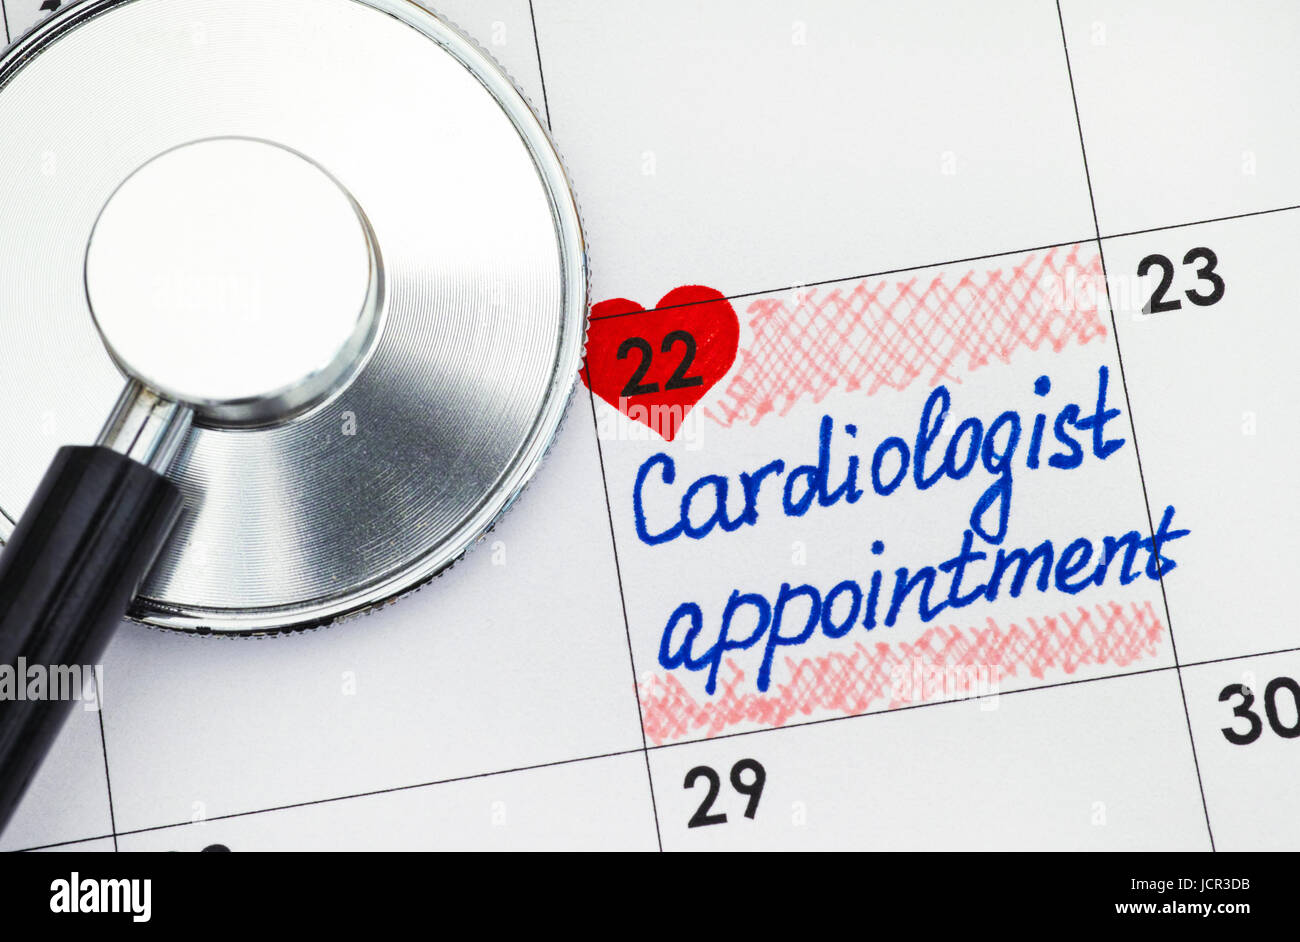 Reminder Cardiologist Appointment in calendar with stethoscope. - Stock Image